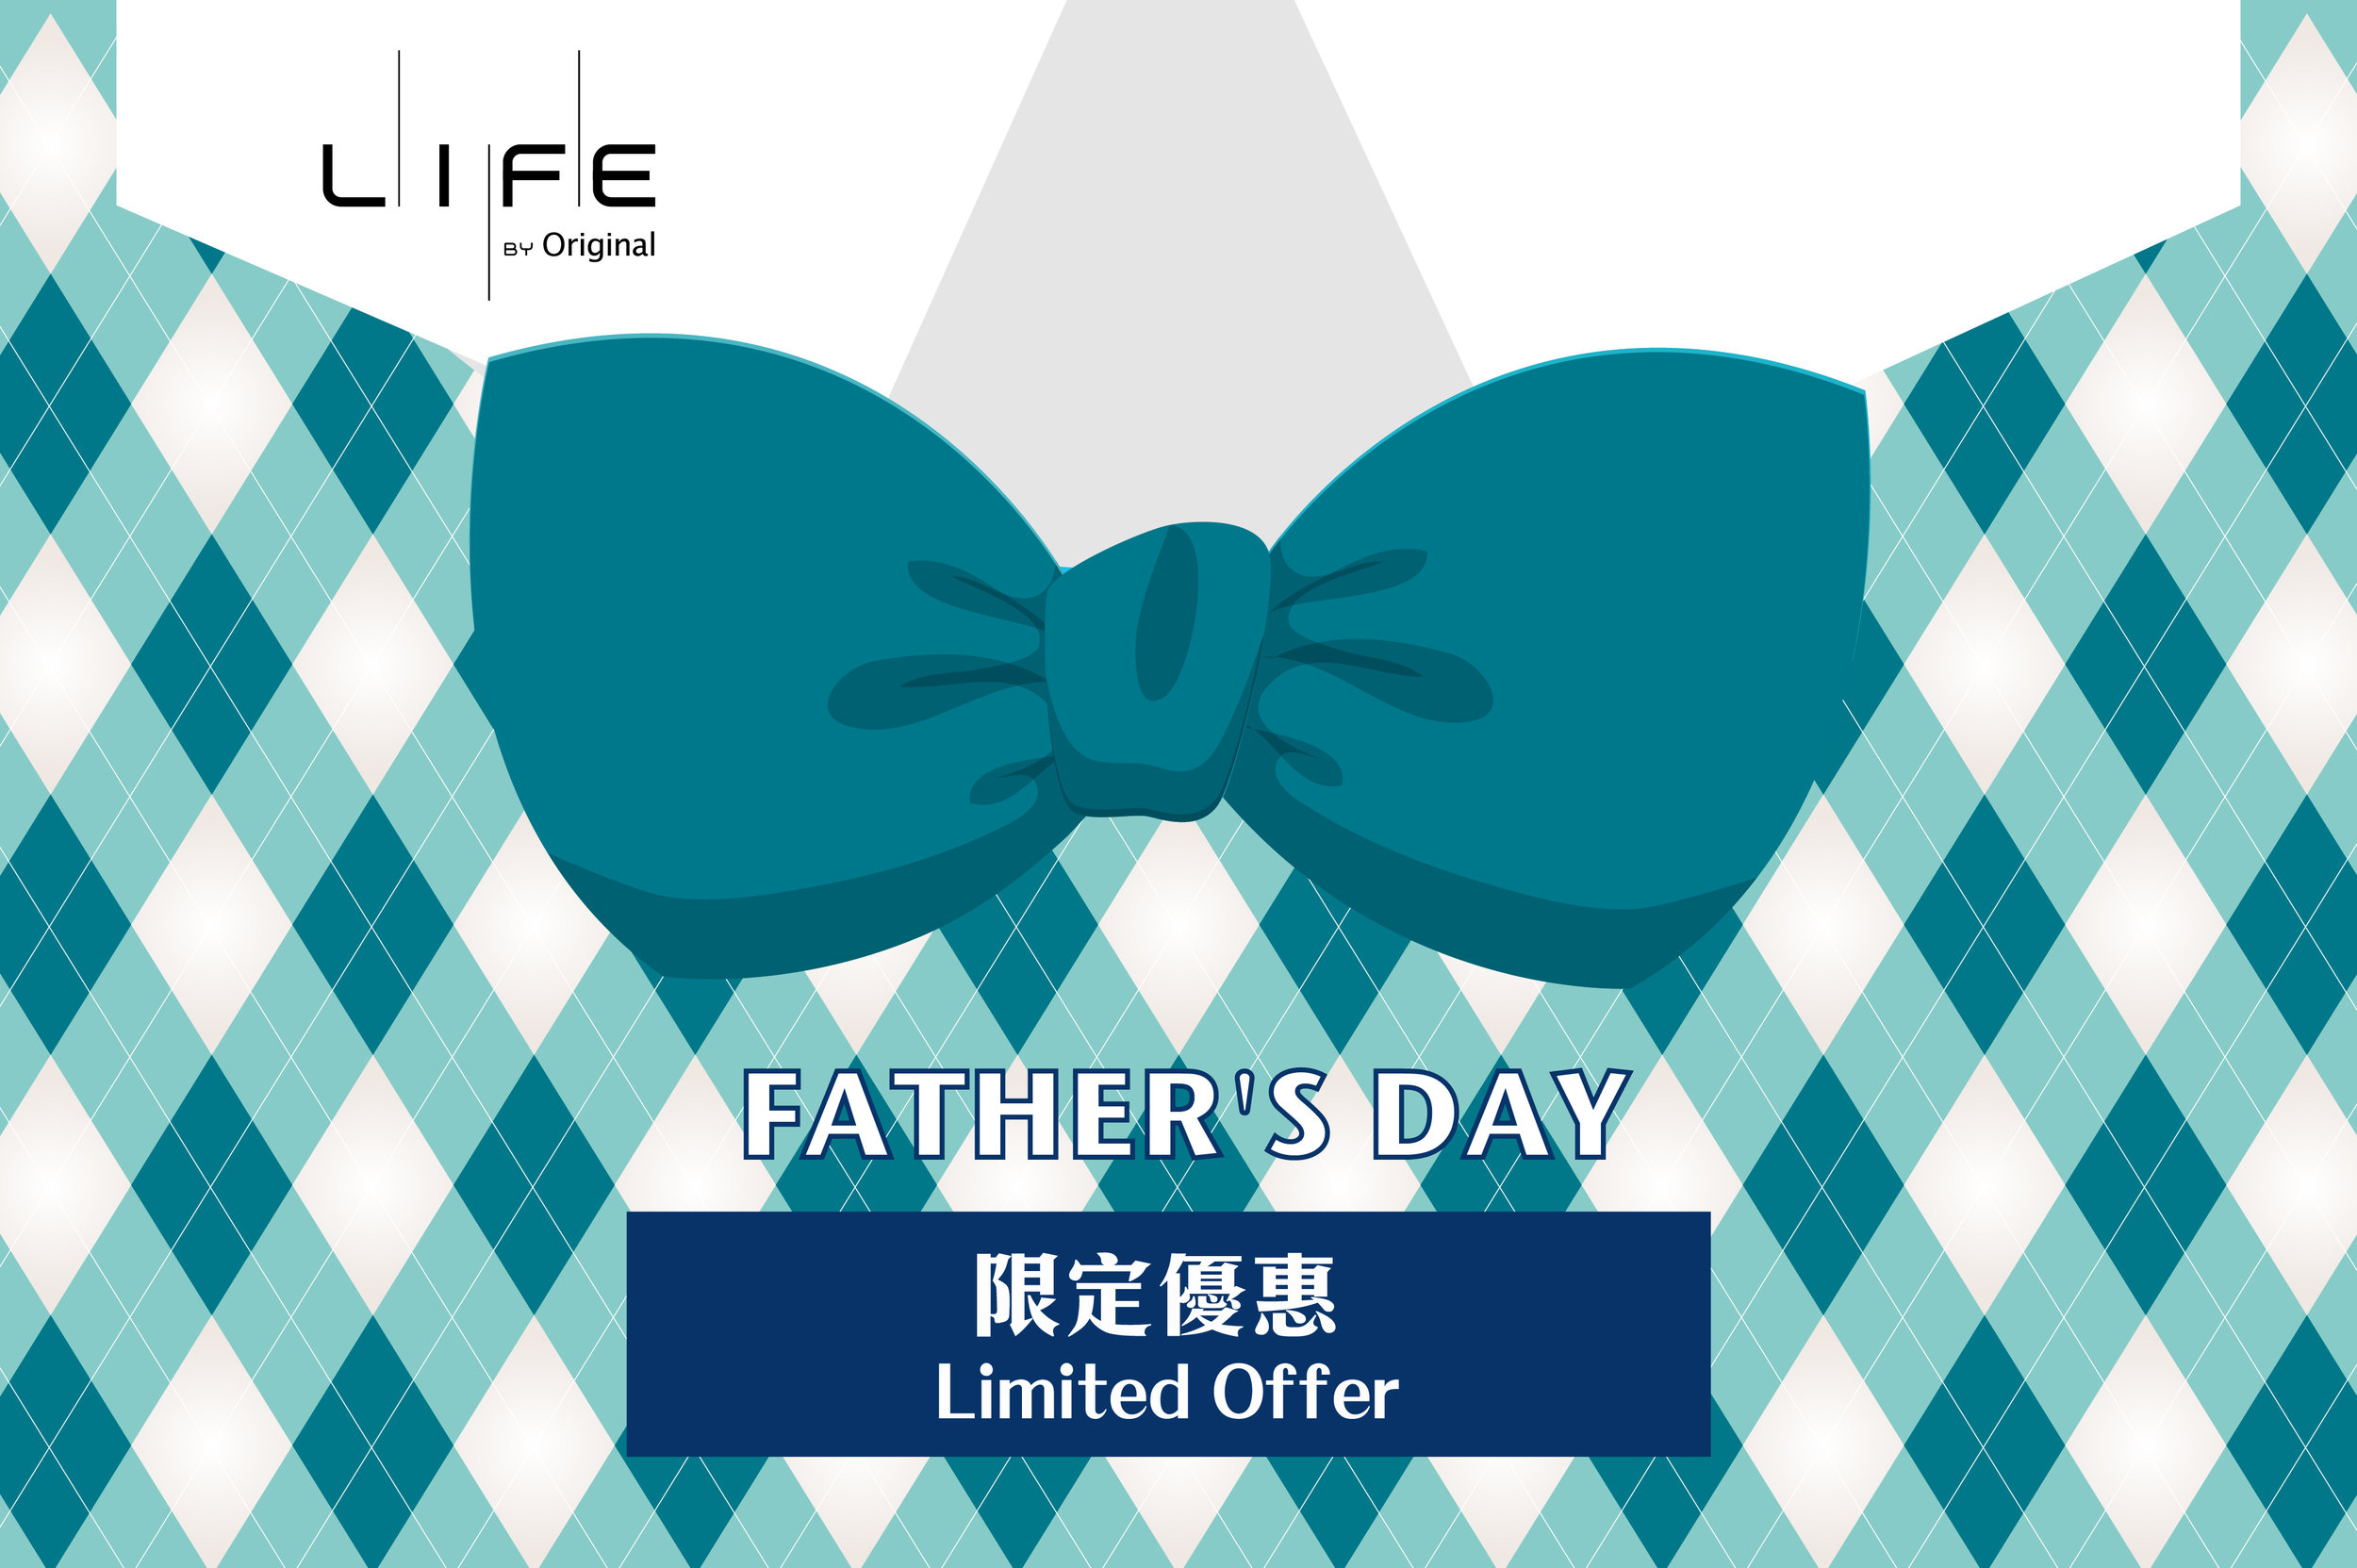 Father's Day 限定優惠|Limited Offer